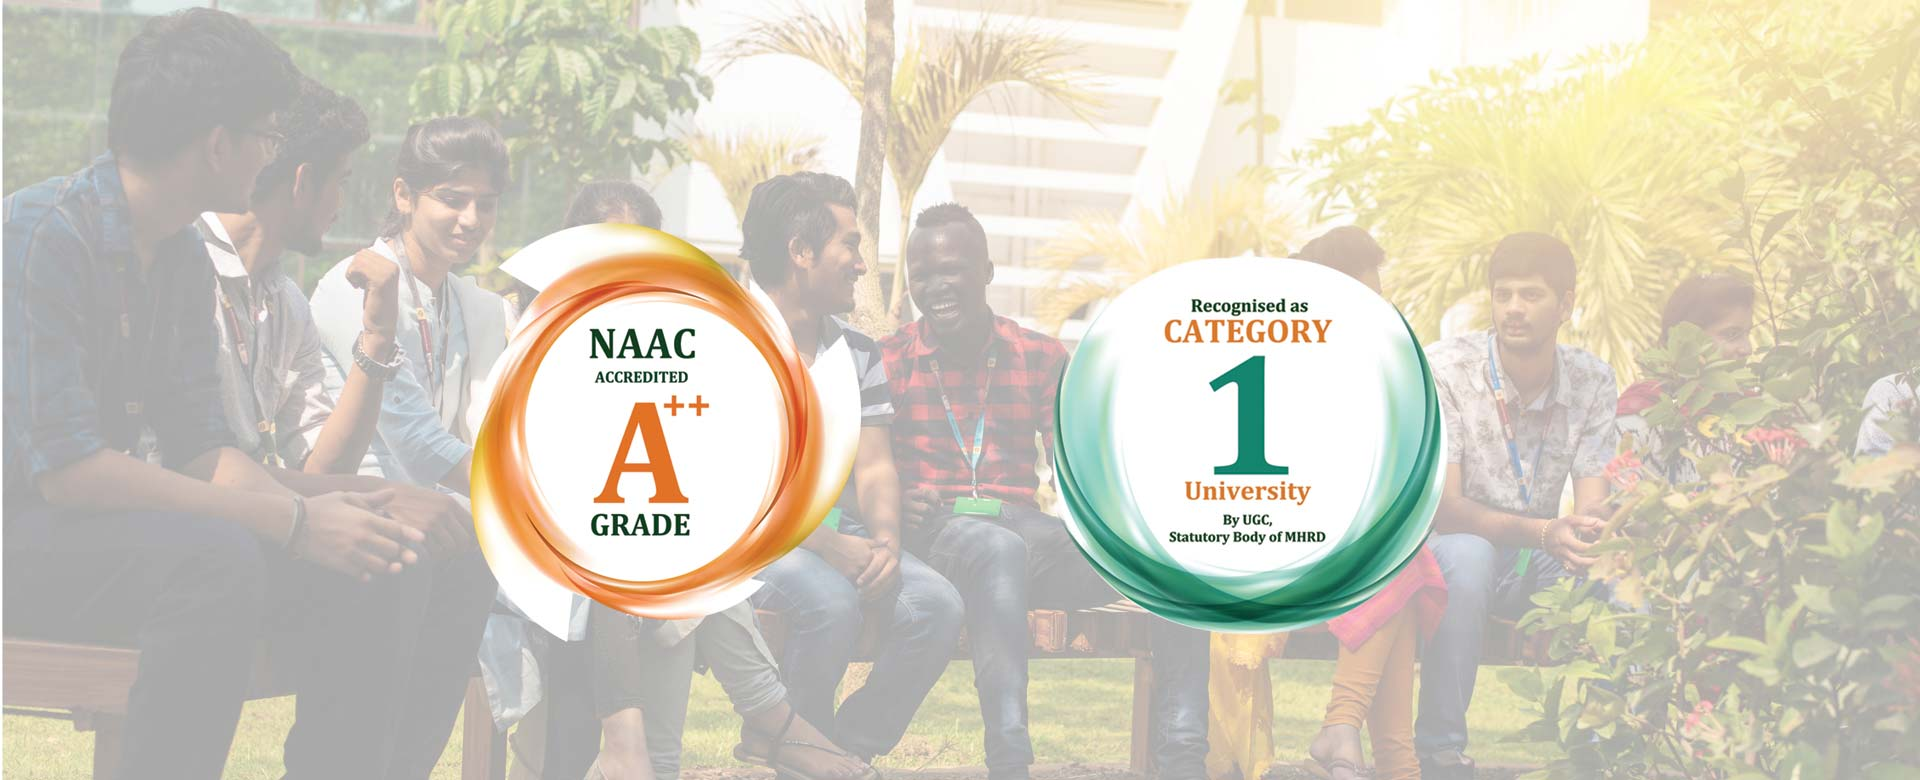 KLEF Accredited by NAAC with A++ Grade